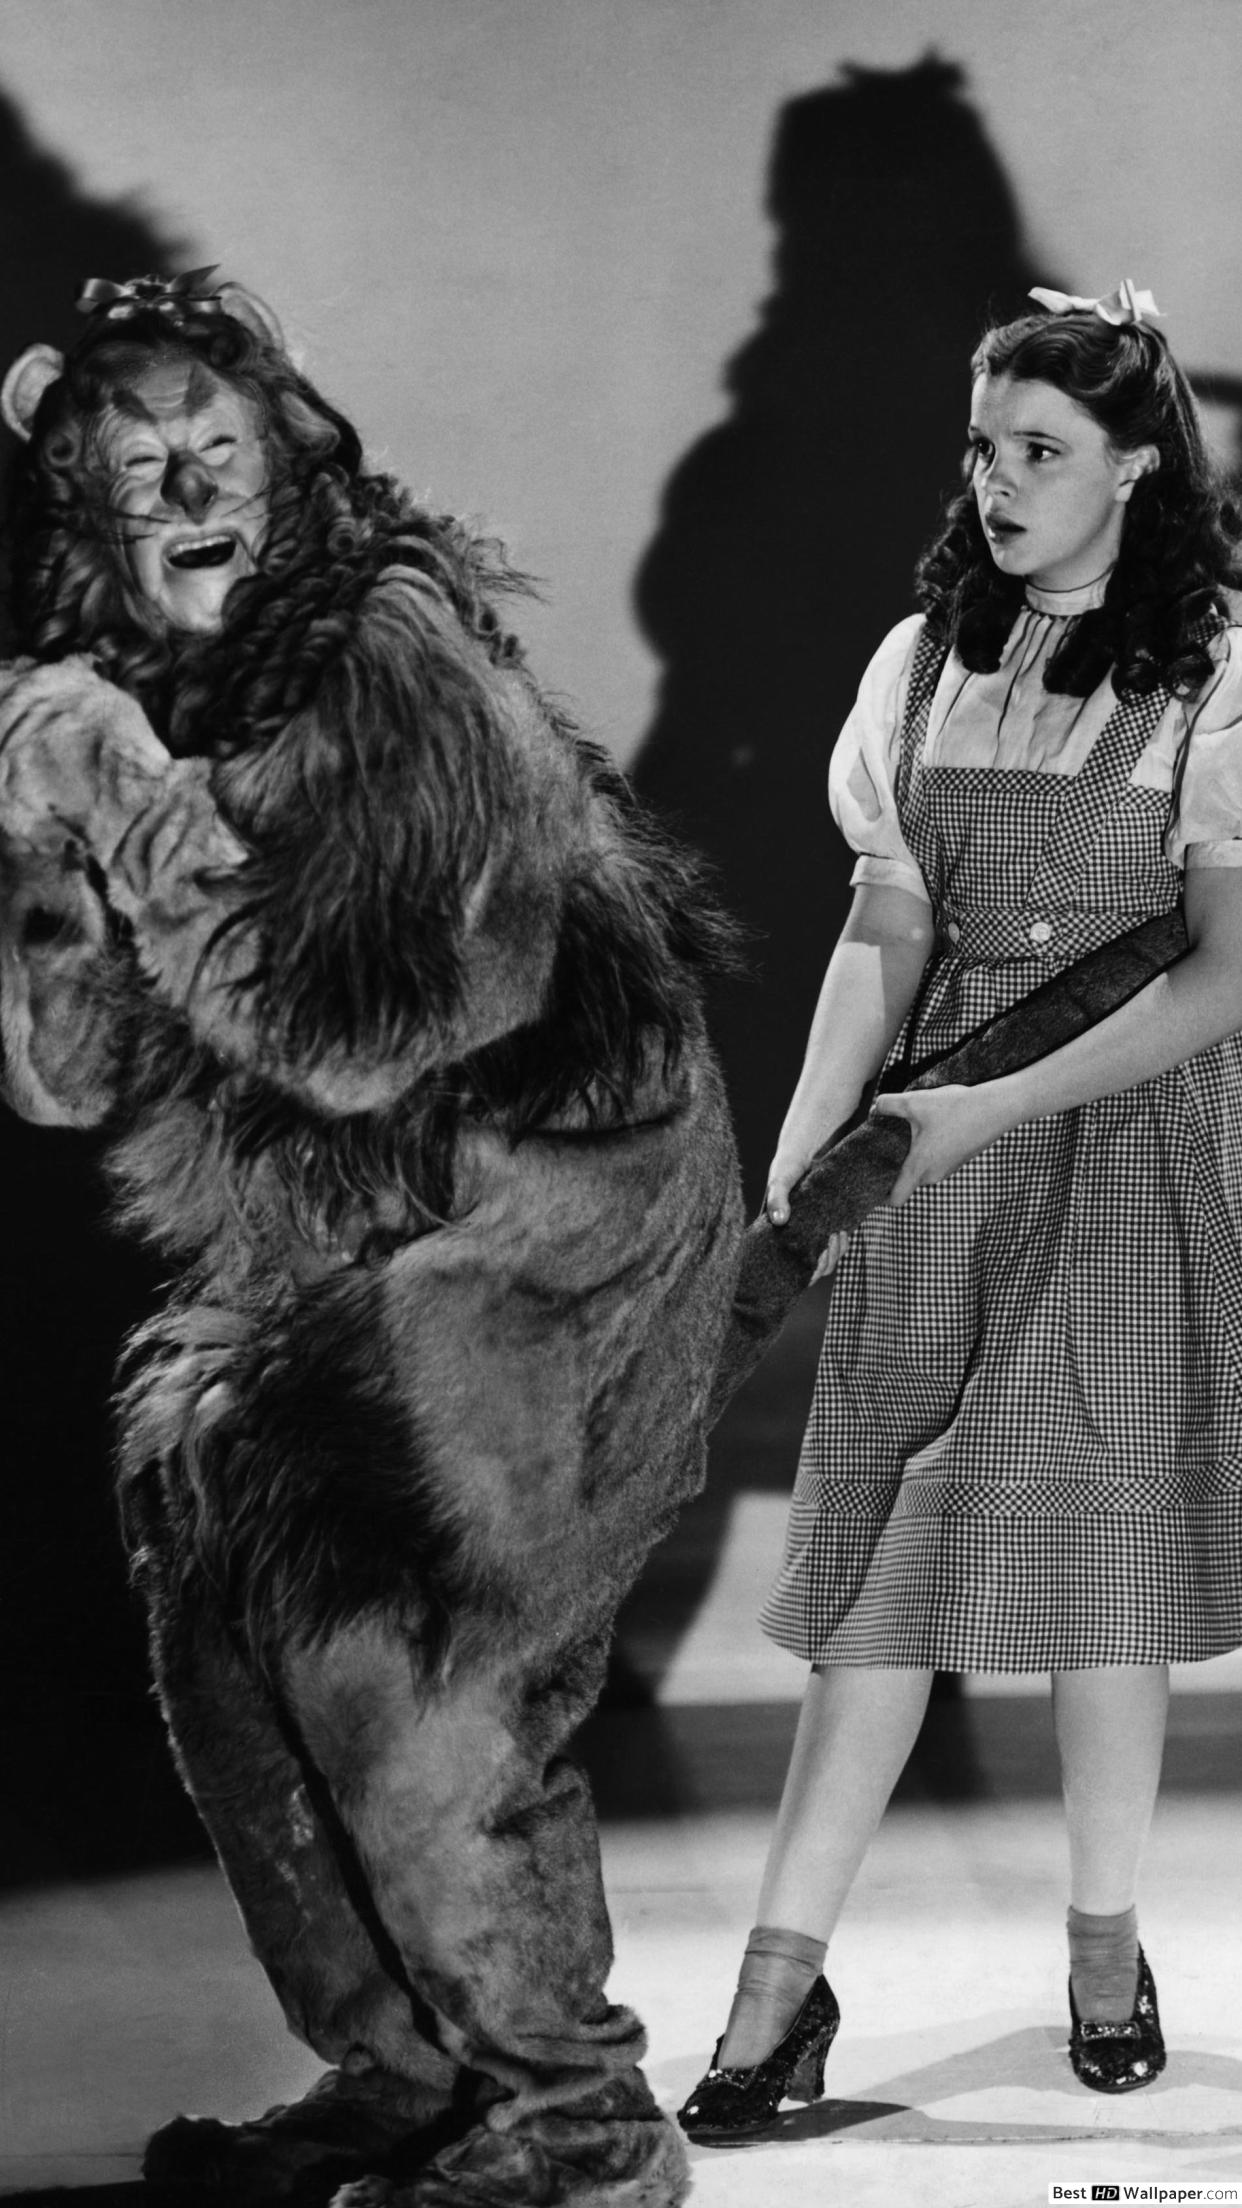 Wizard Of Oz Iphone Wallpaper Posted By John Cunningham